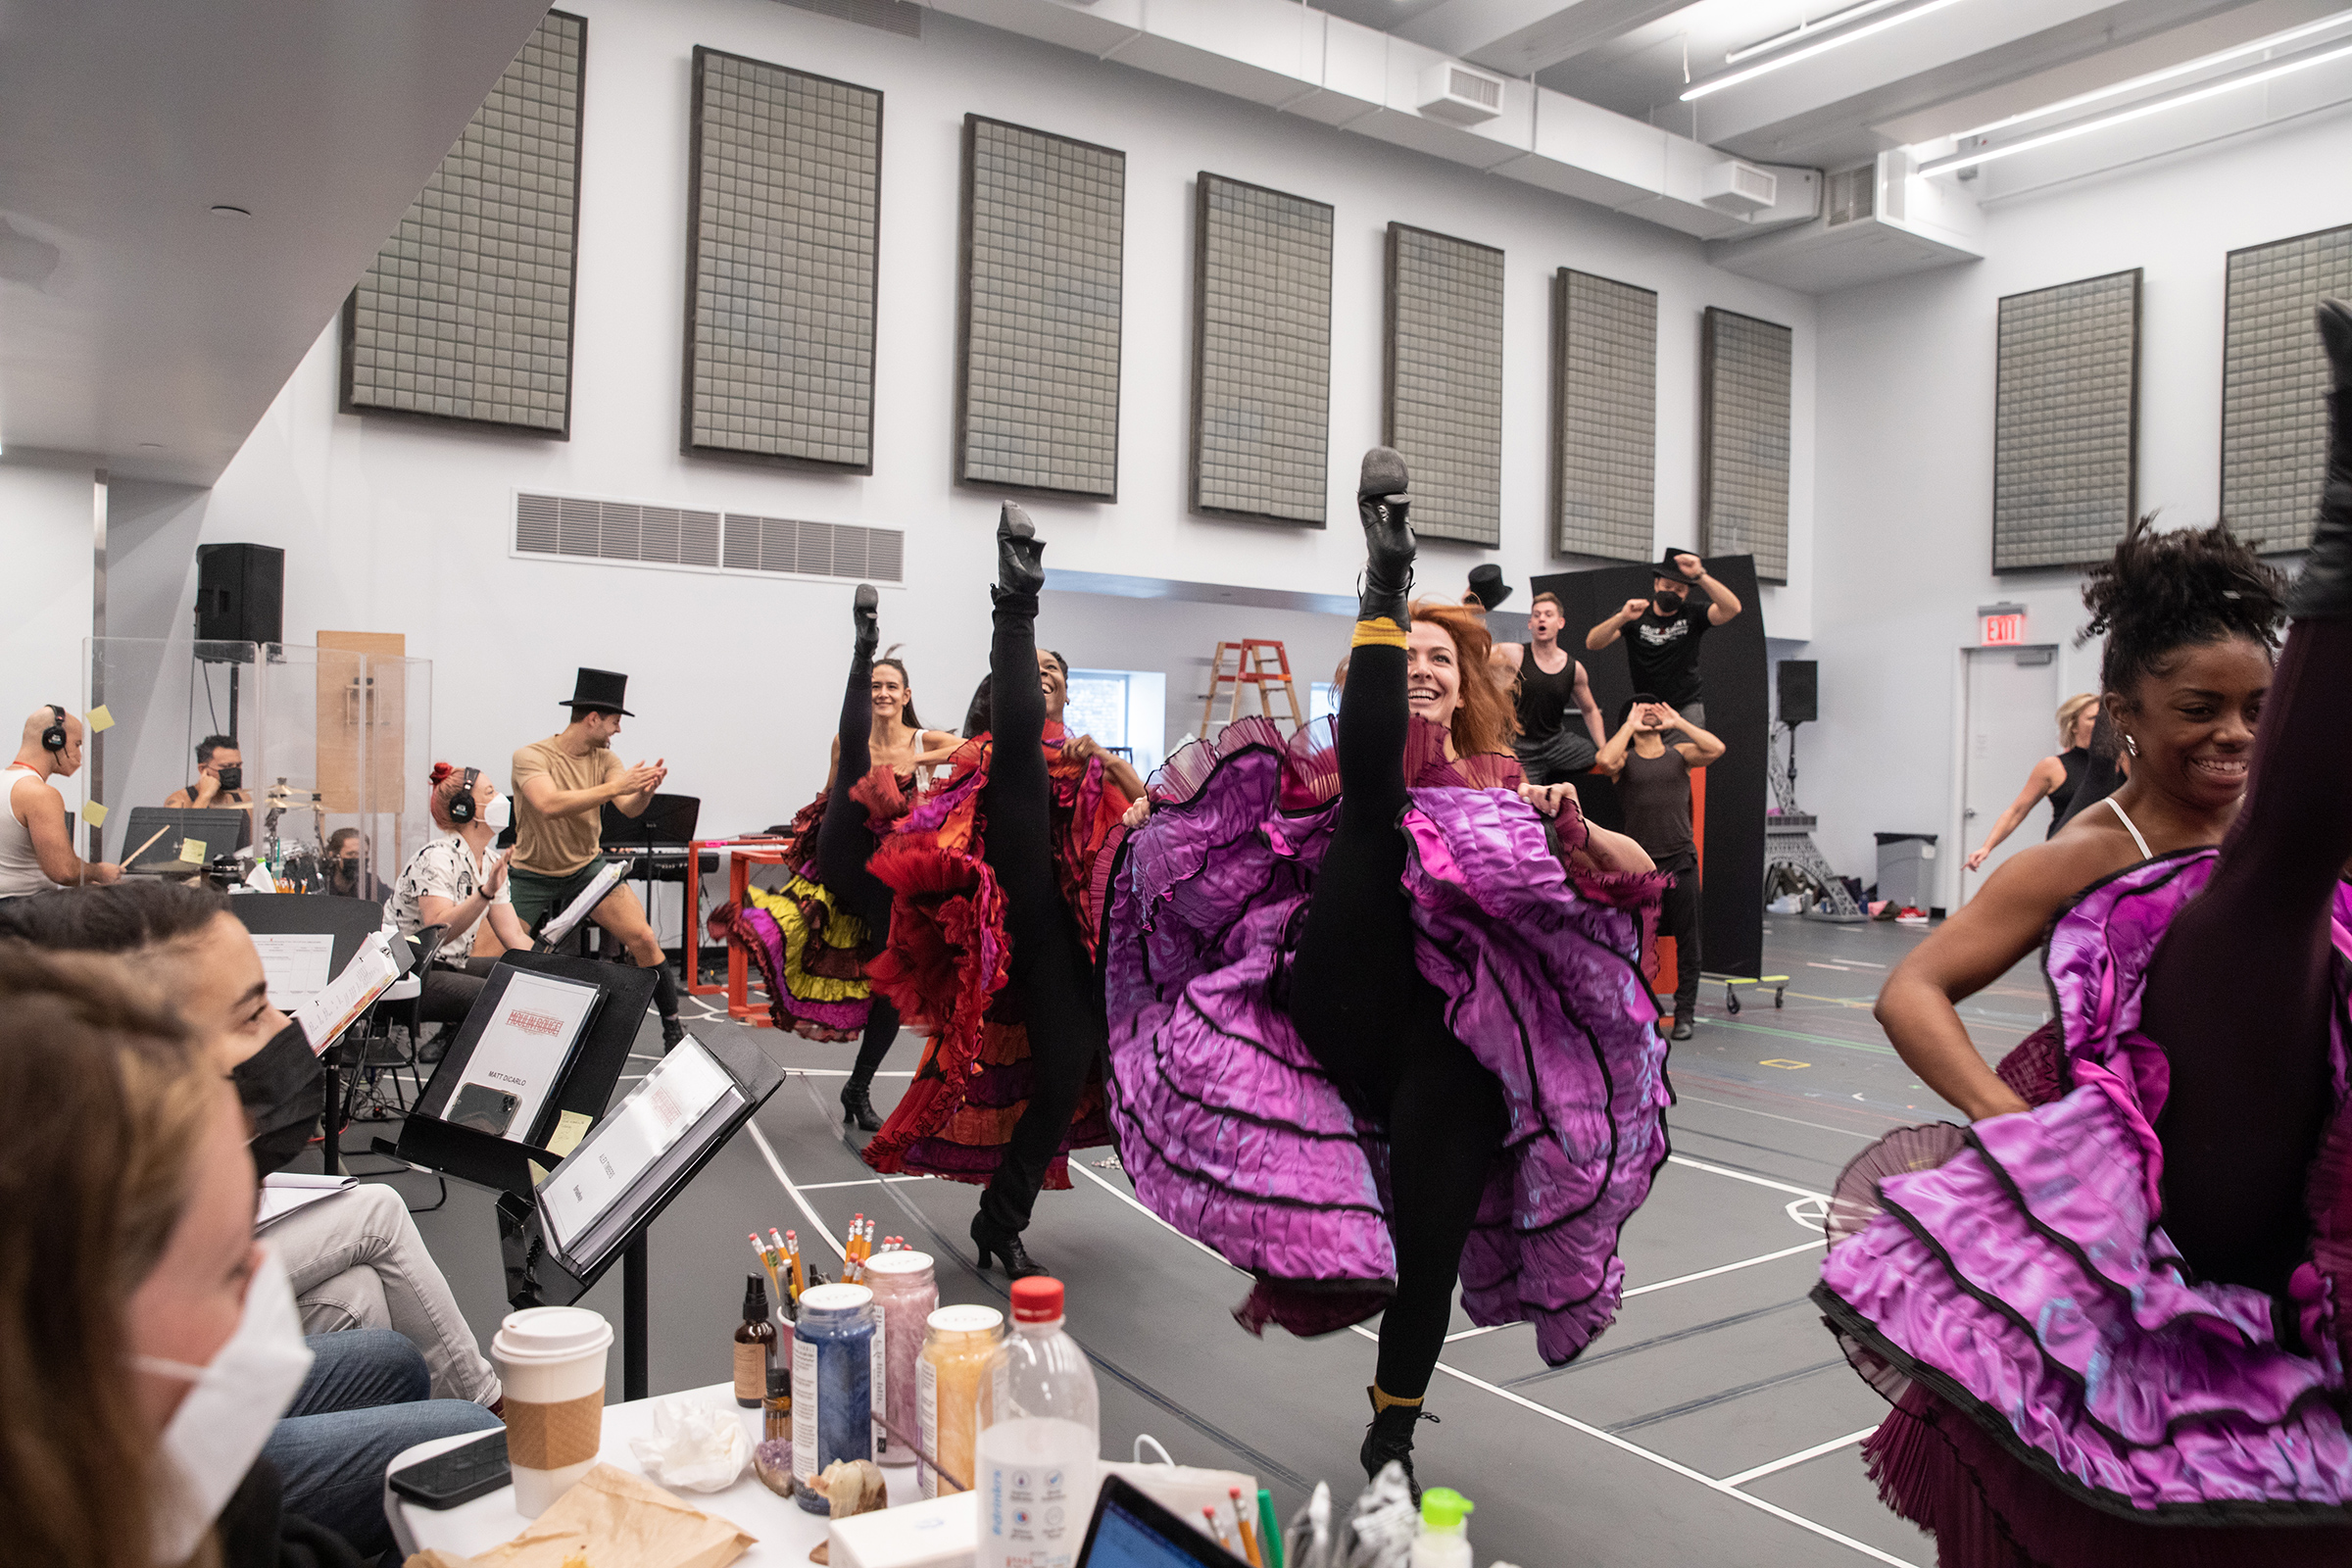 Ensemble members doing the can-can during the Moulin Rouge! The Musical run-through in the studio on Sept. 12, 2021.